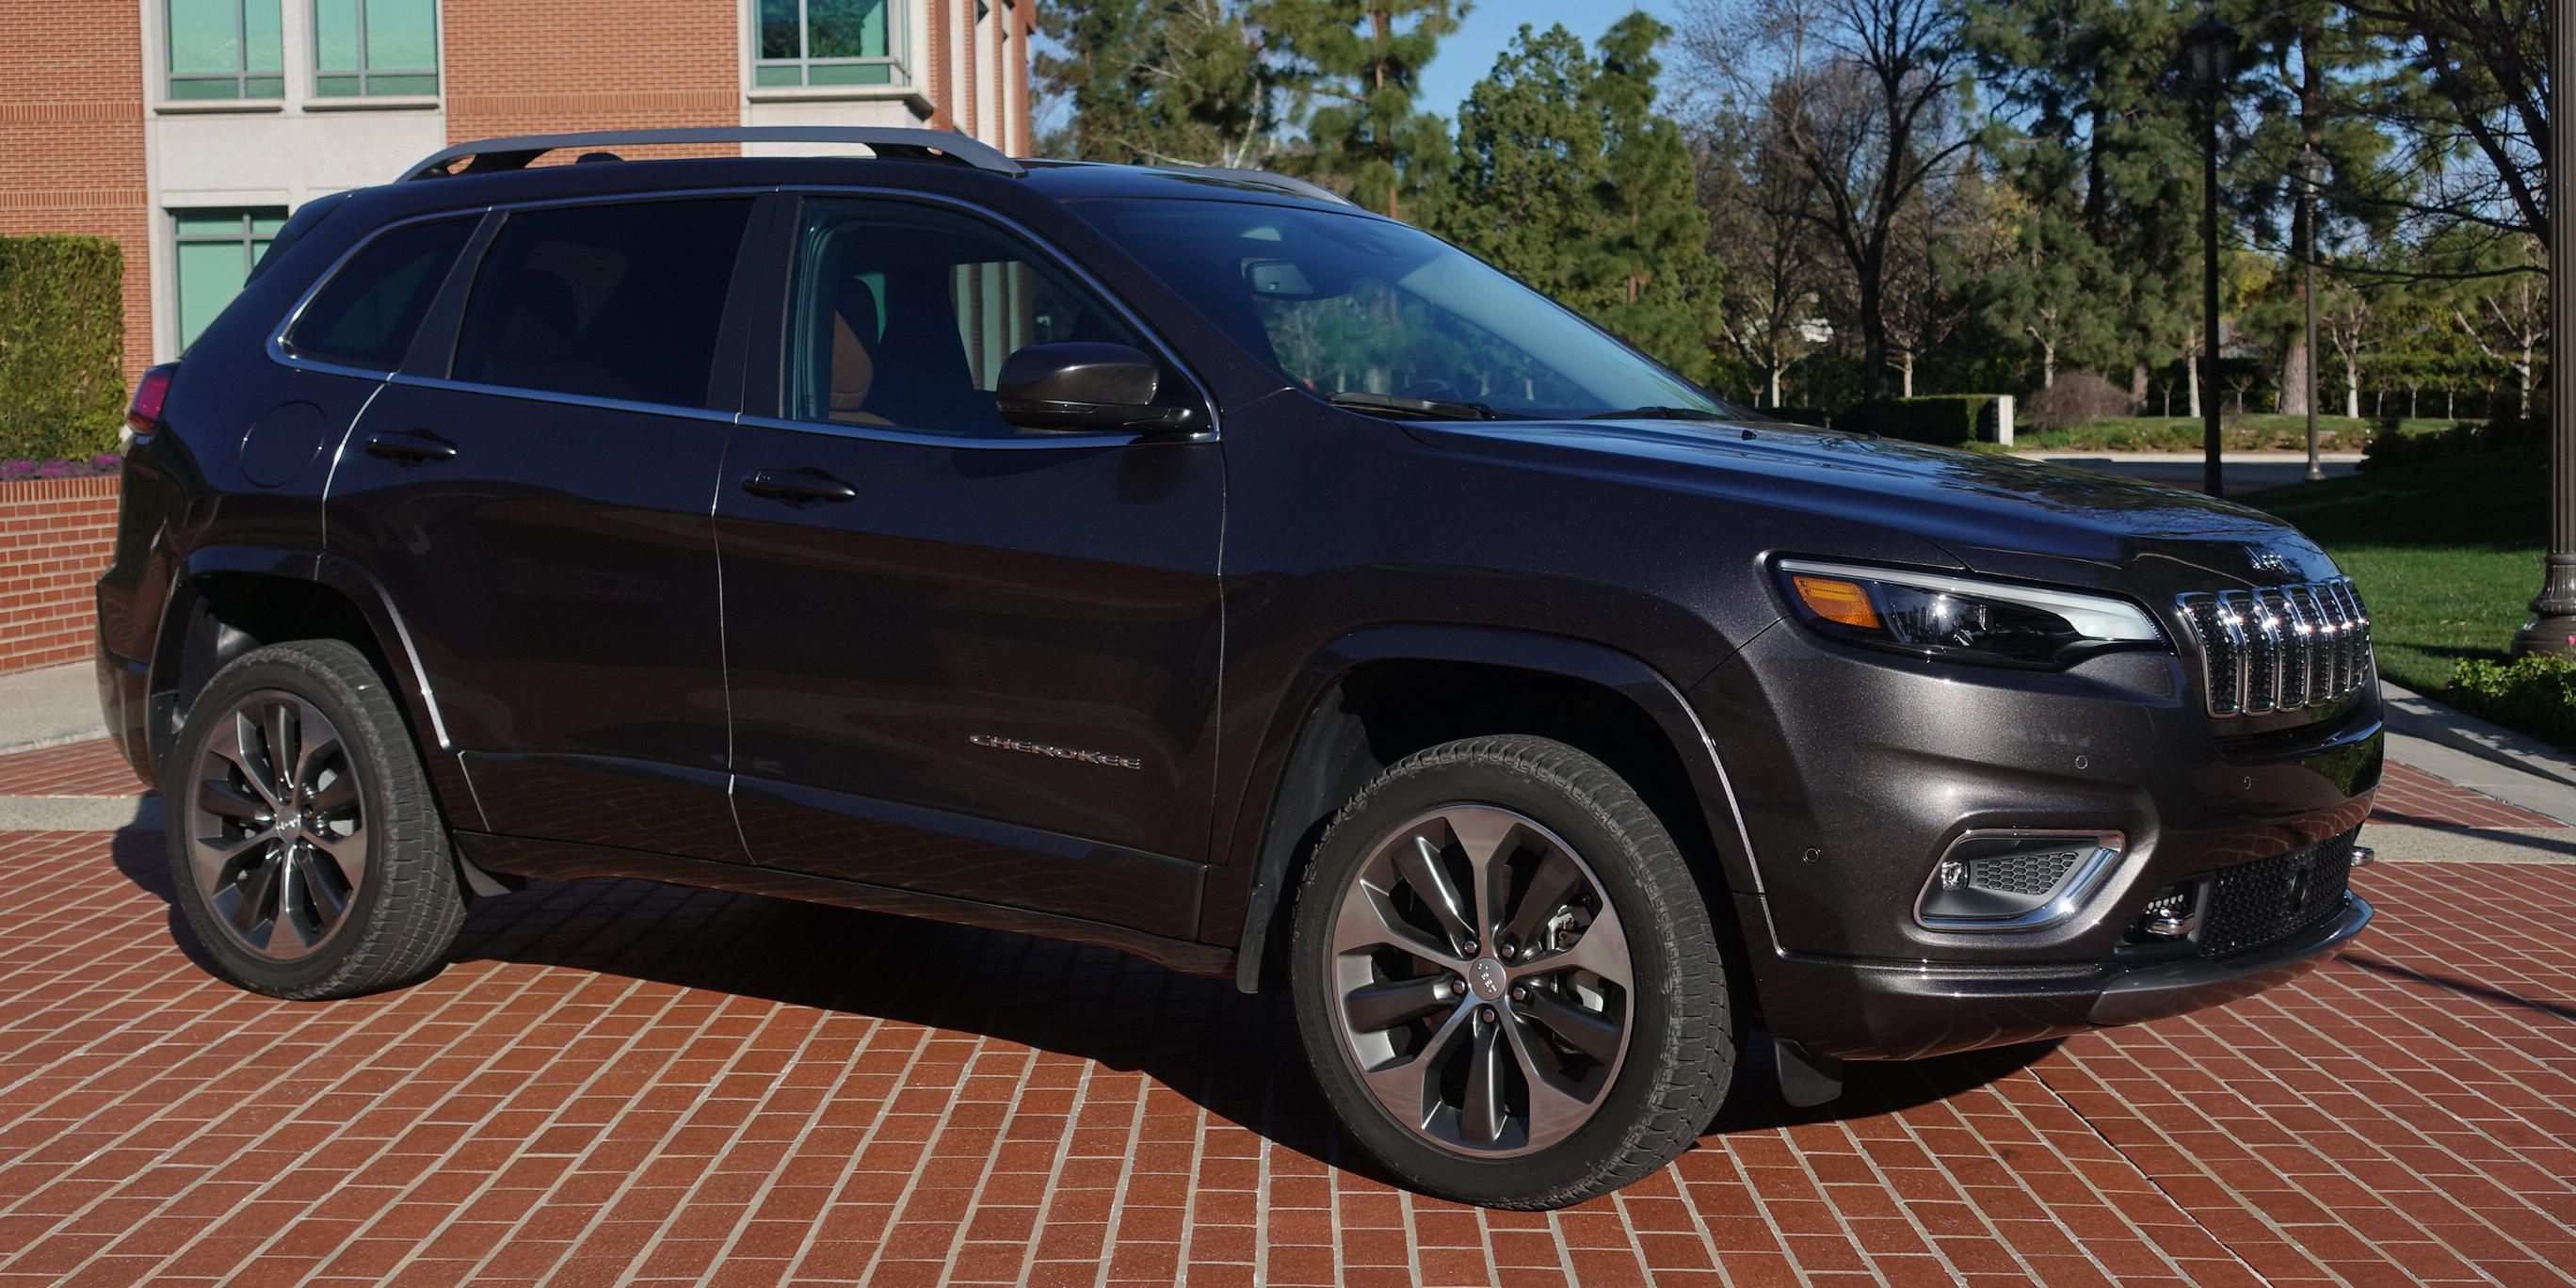 81 New 2019 Dodge Grand Cherokee Release Date Price and Review for 2019 Dodge Grand Cherokee Release Date